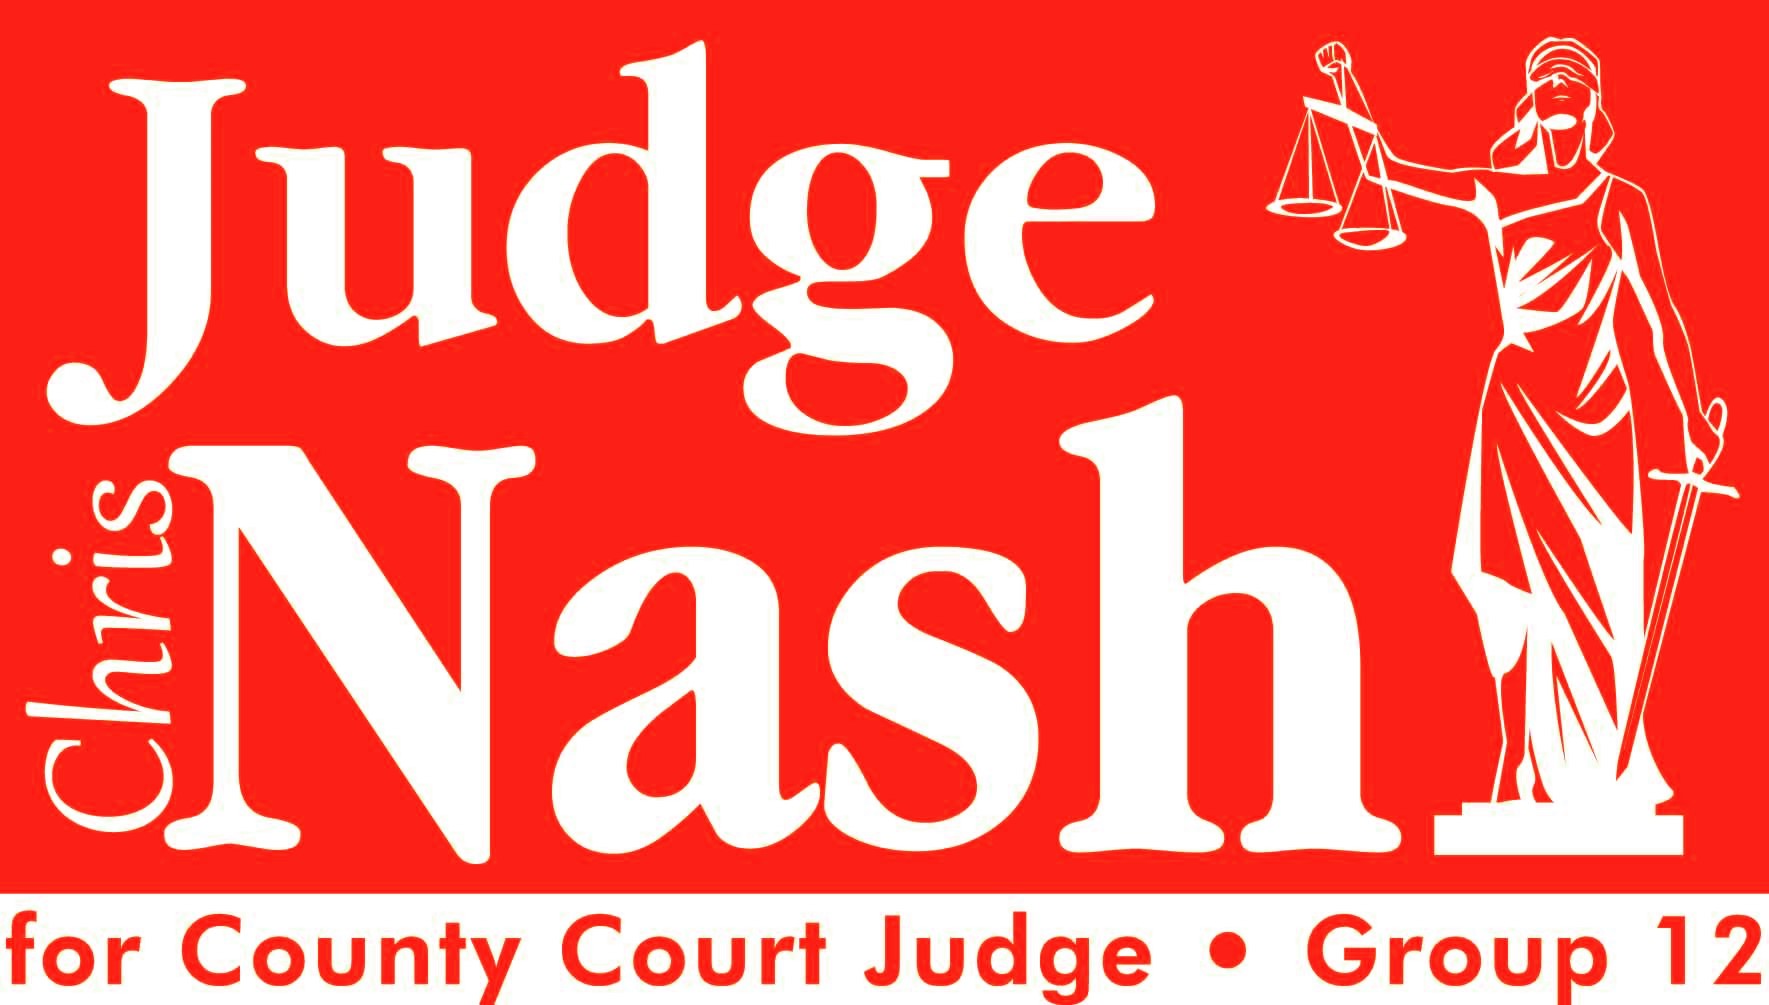 Re-Elect Judge Chris Nash